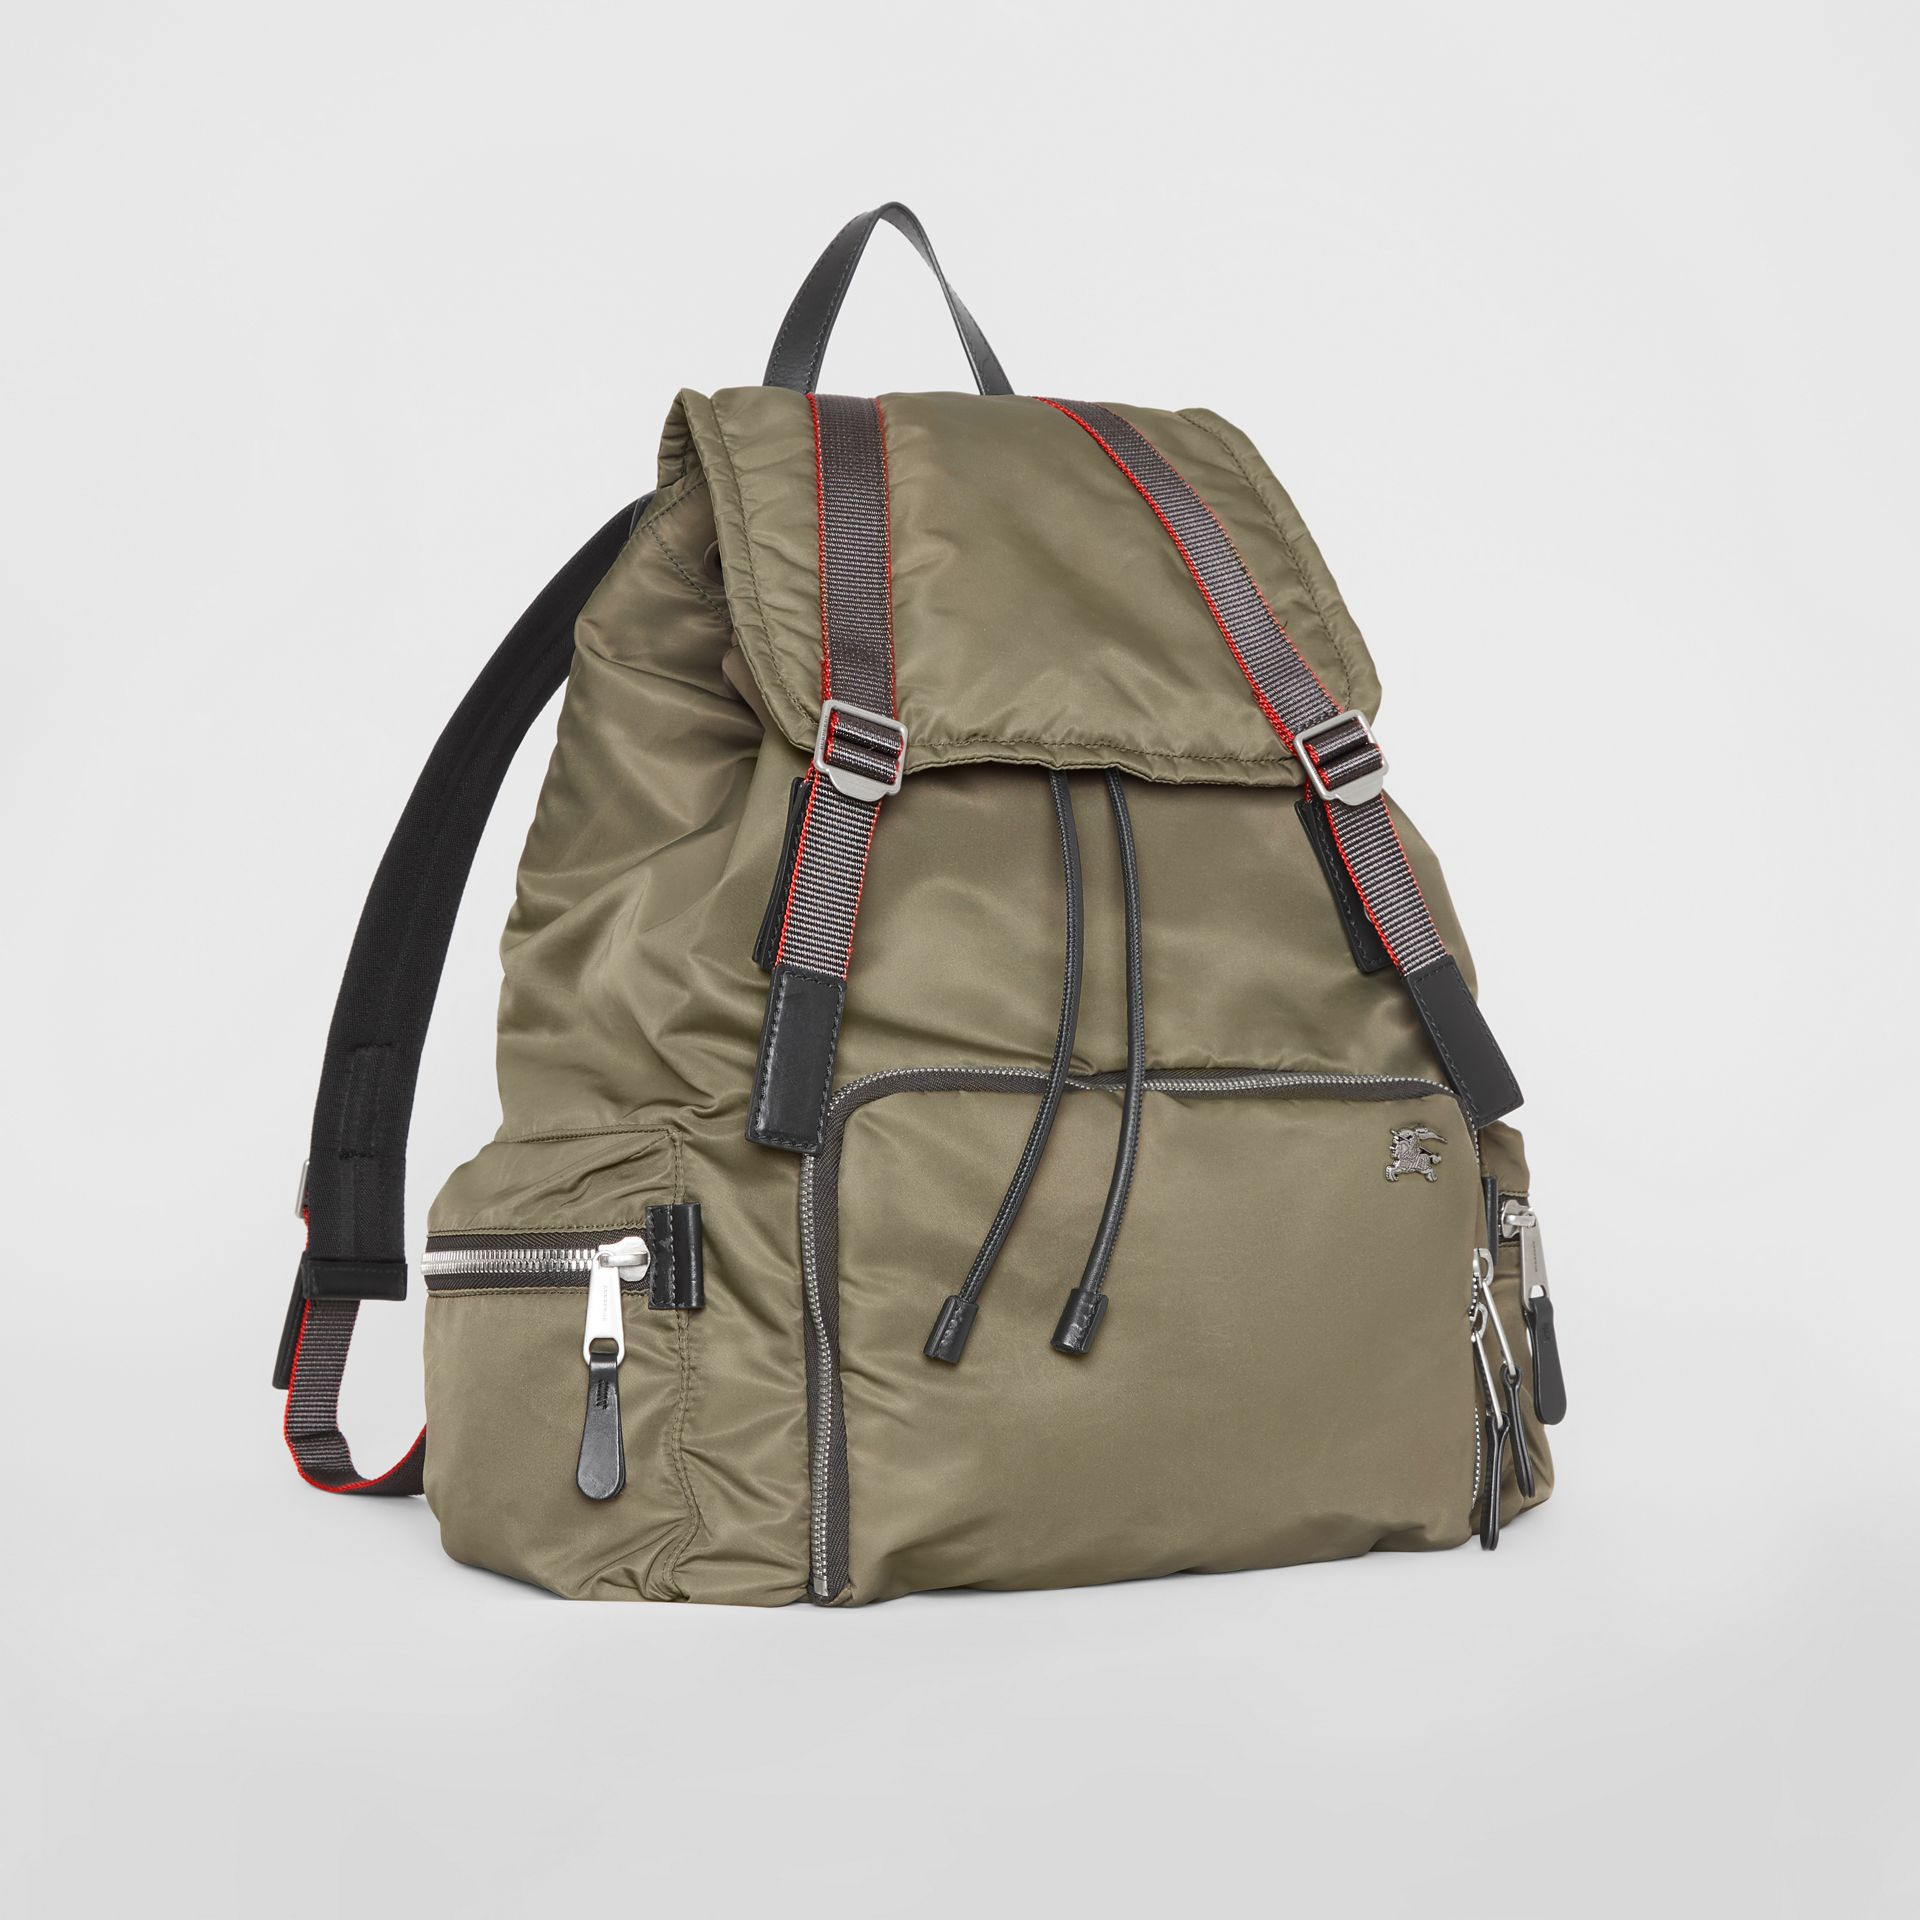 Sac The Rucksack extra-large en nylon façon aviateur (Céladon) - Homme | Burberry - photo de la galerie 5